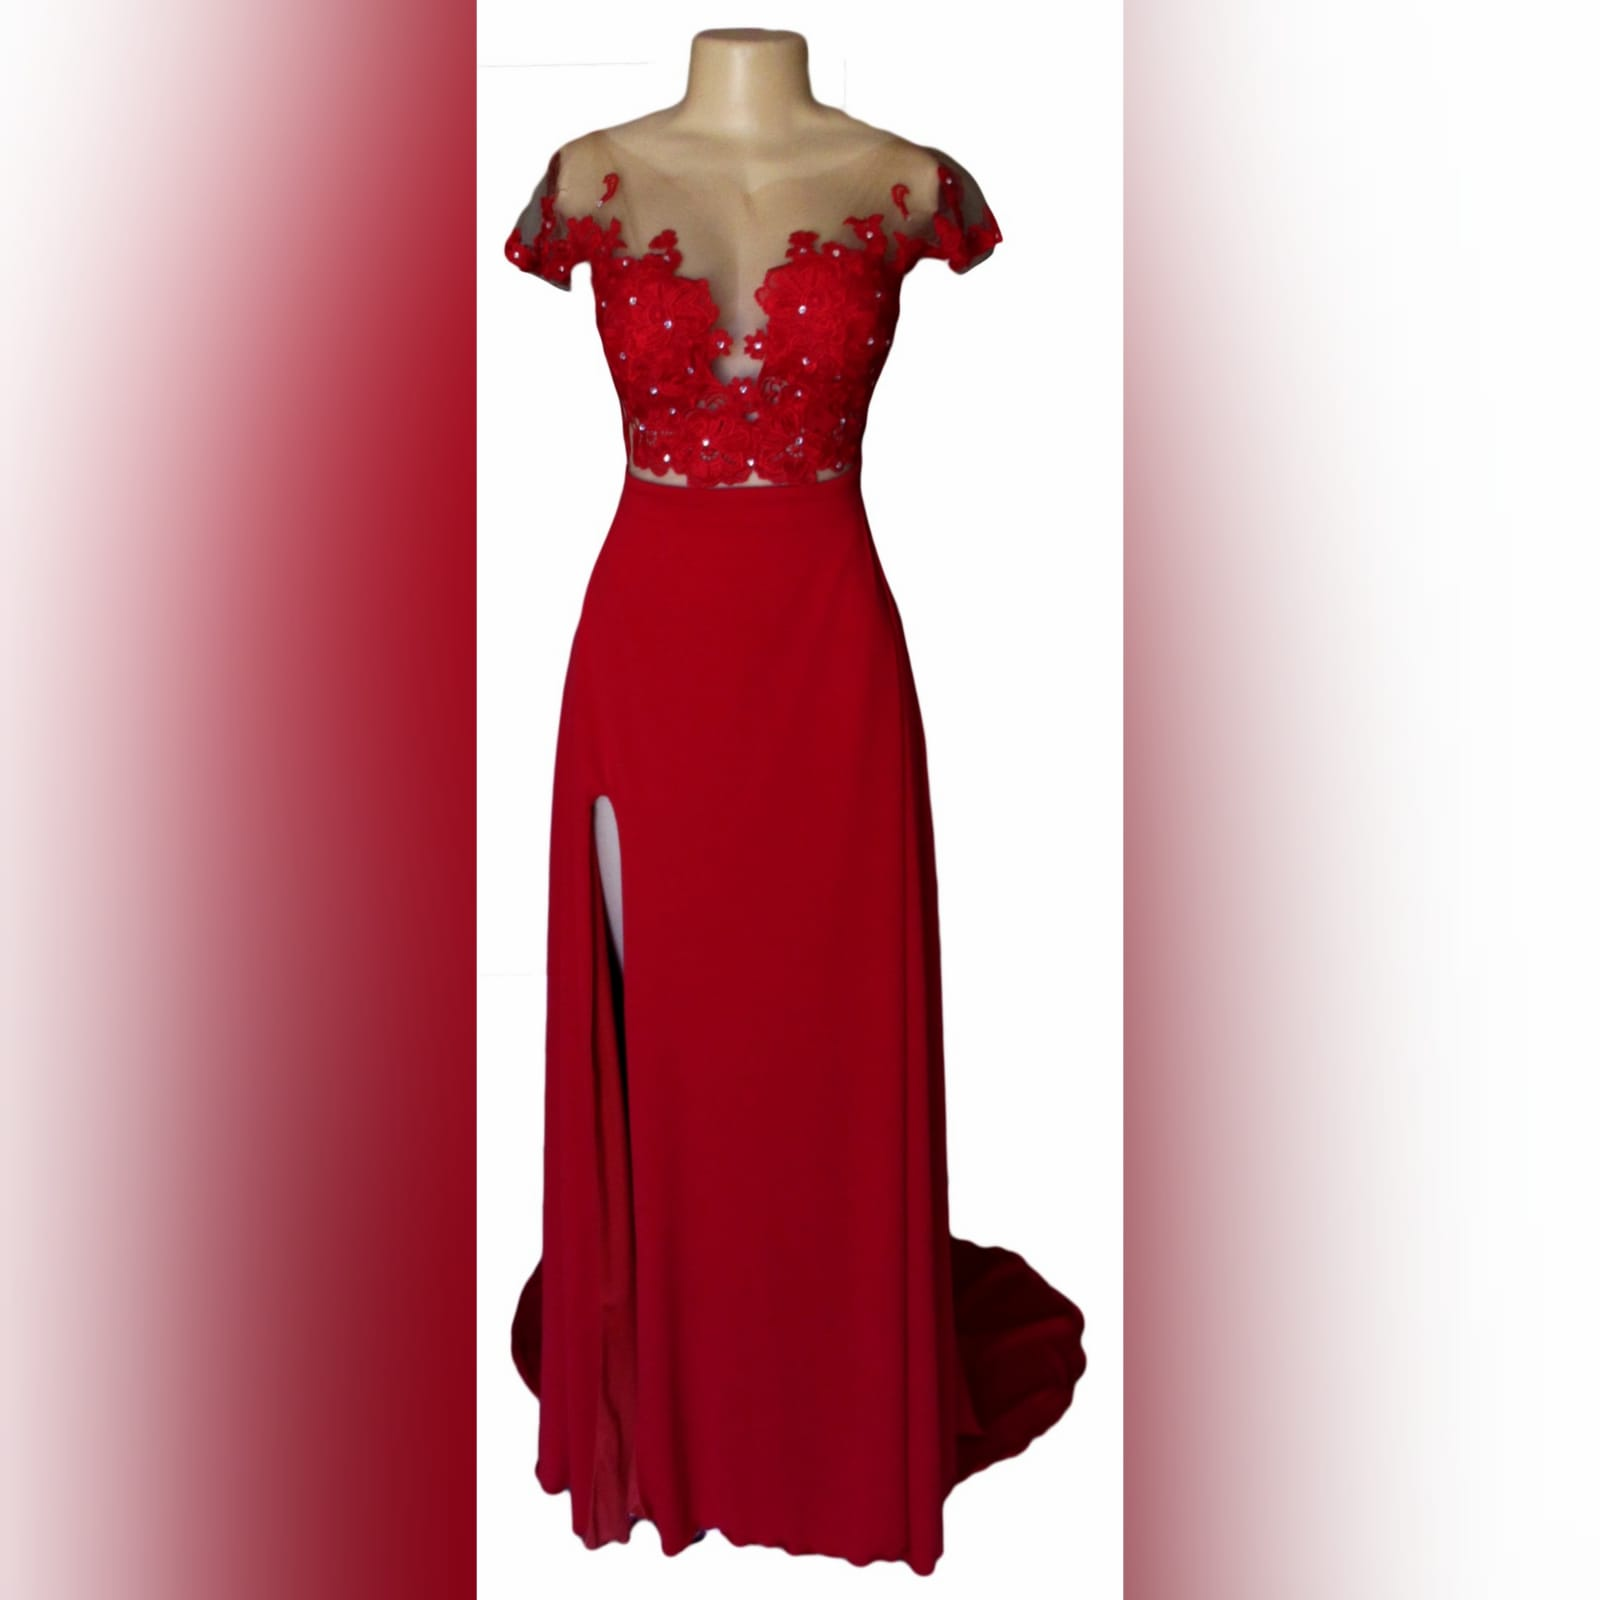 Red flowy lace bodice prom dress 10 red flowy lace bodice prom dress. With an illusion lace bodice detailed with silver beads and buttons. Evening dress with a slit and a train.